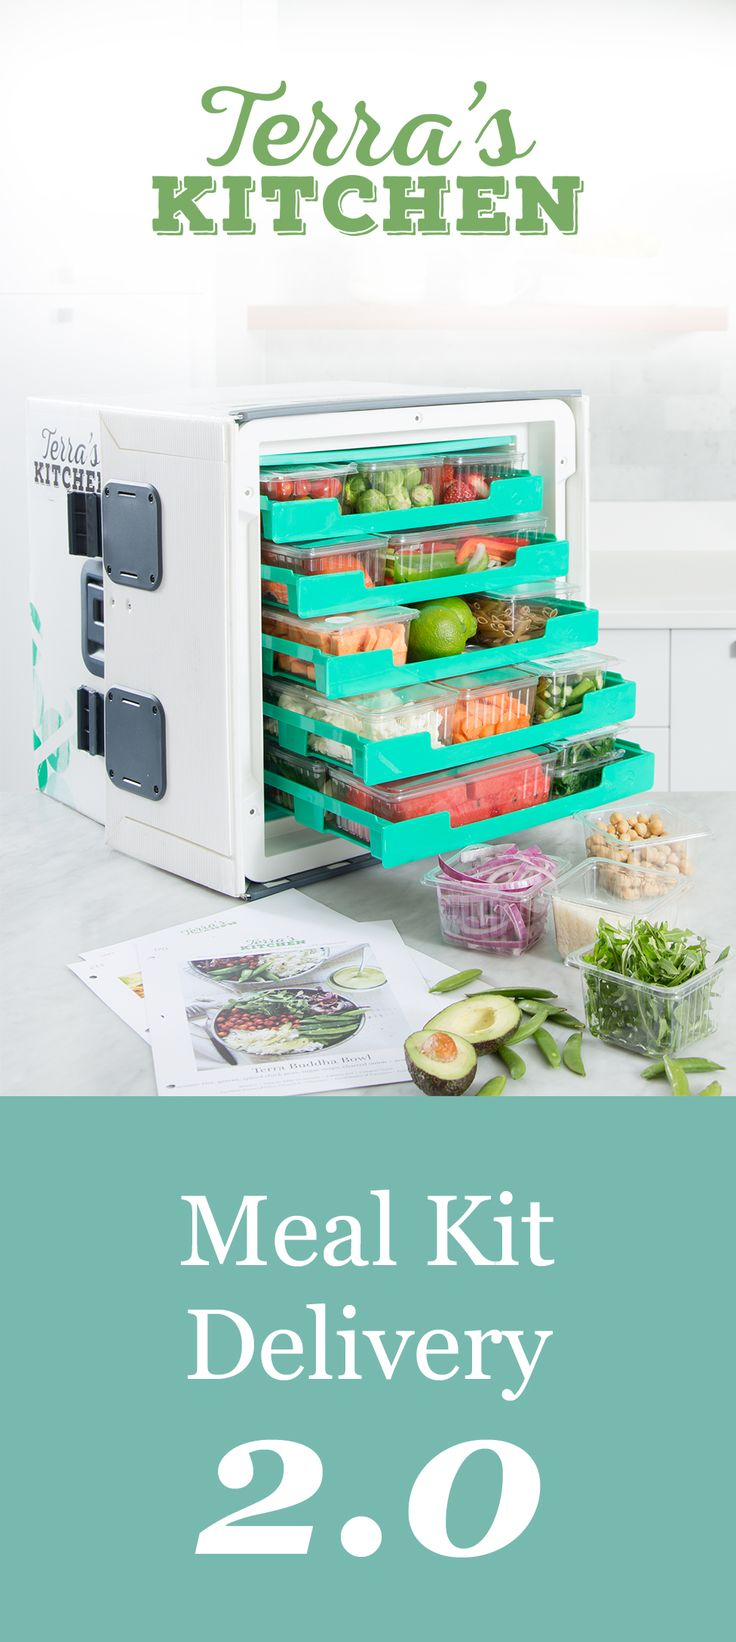 Take 50% off next generation meal-kit delivery